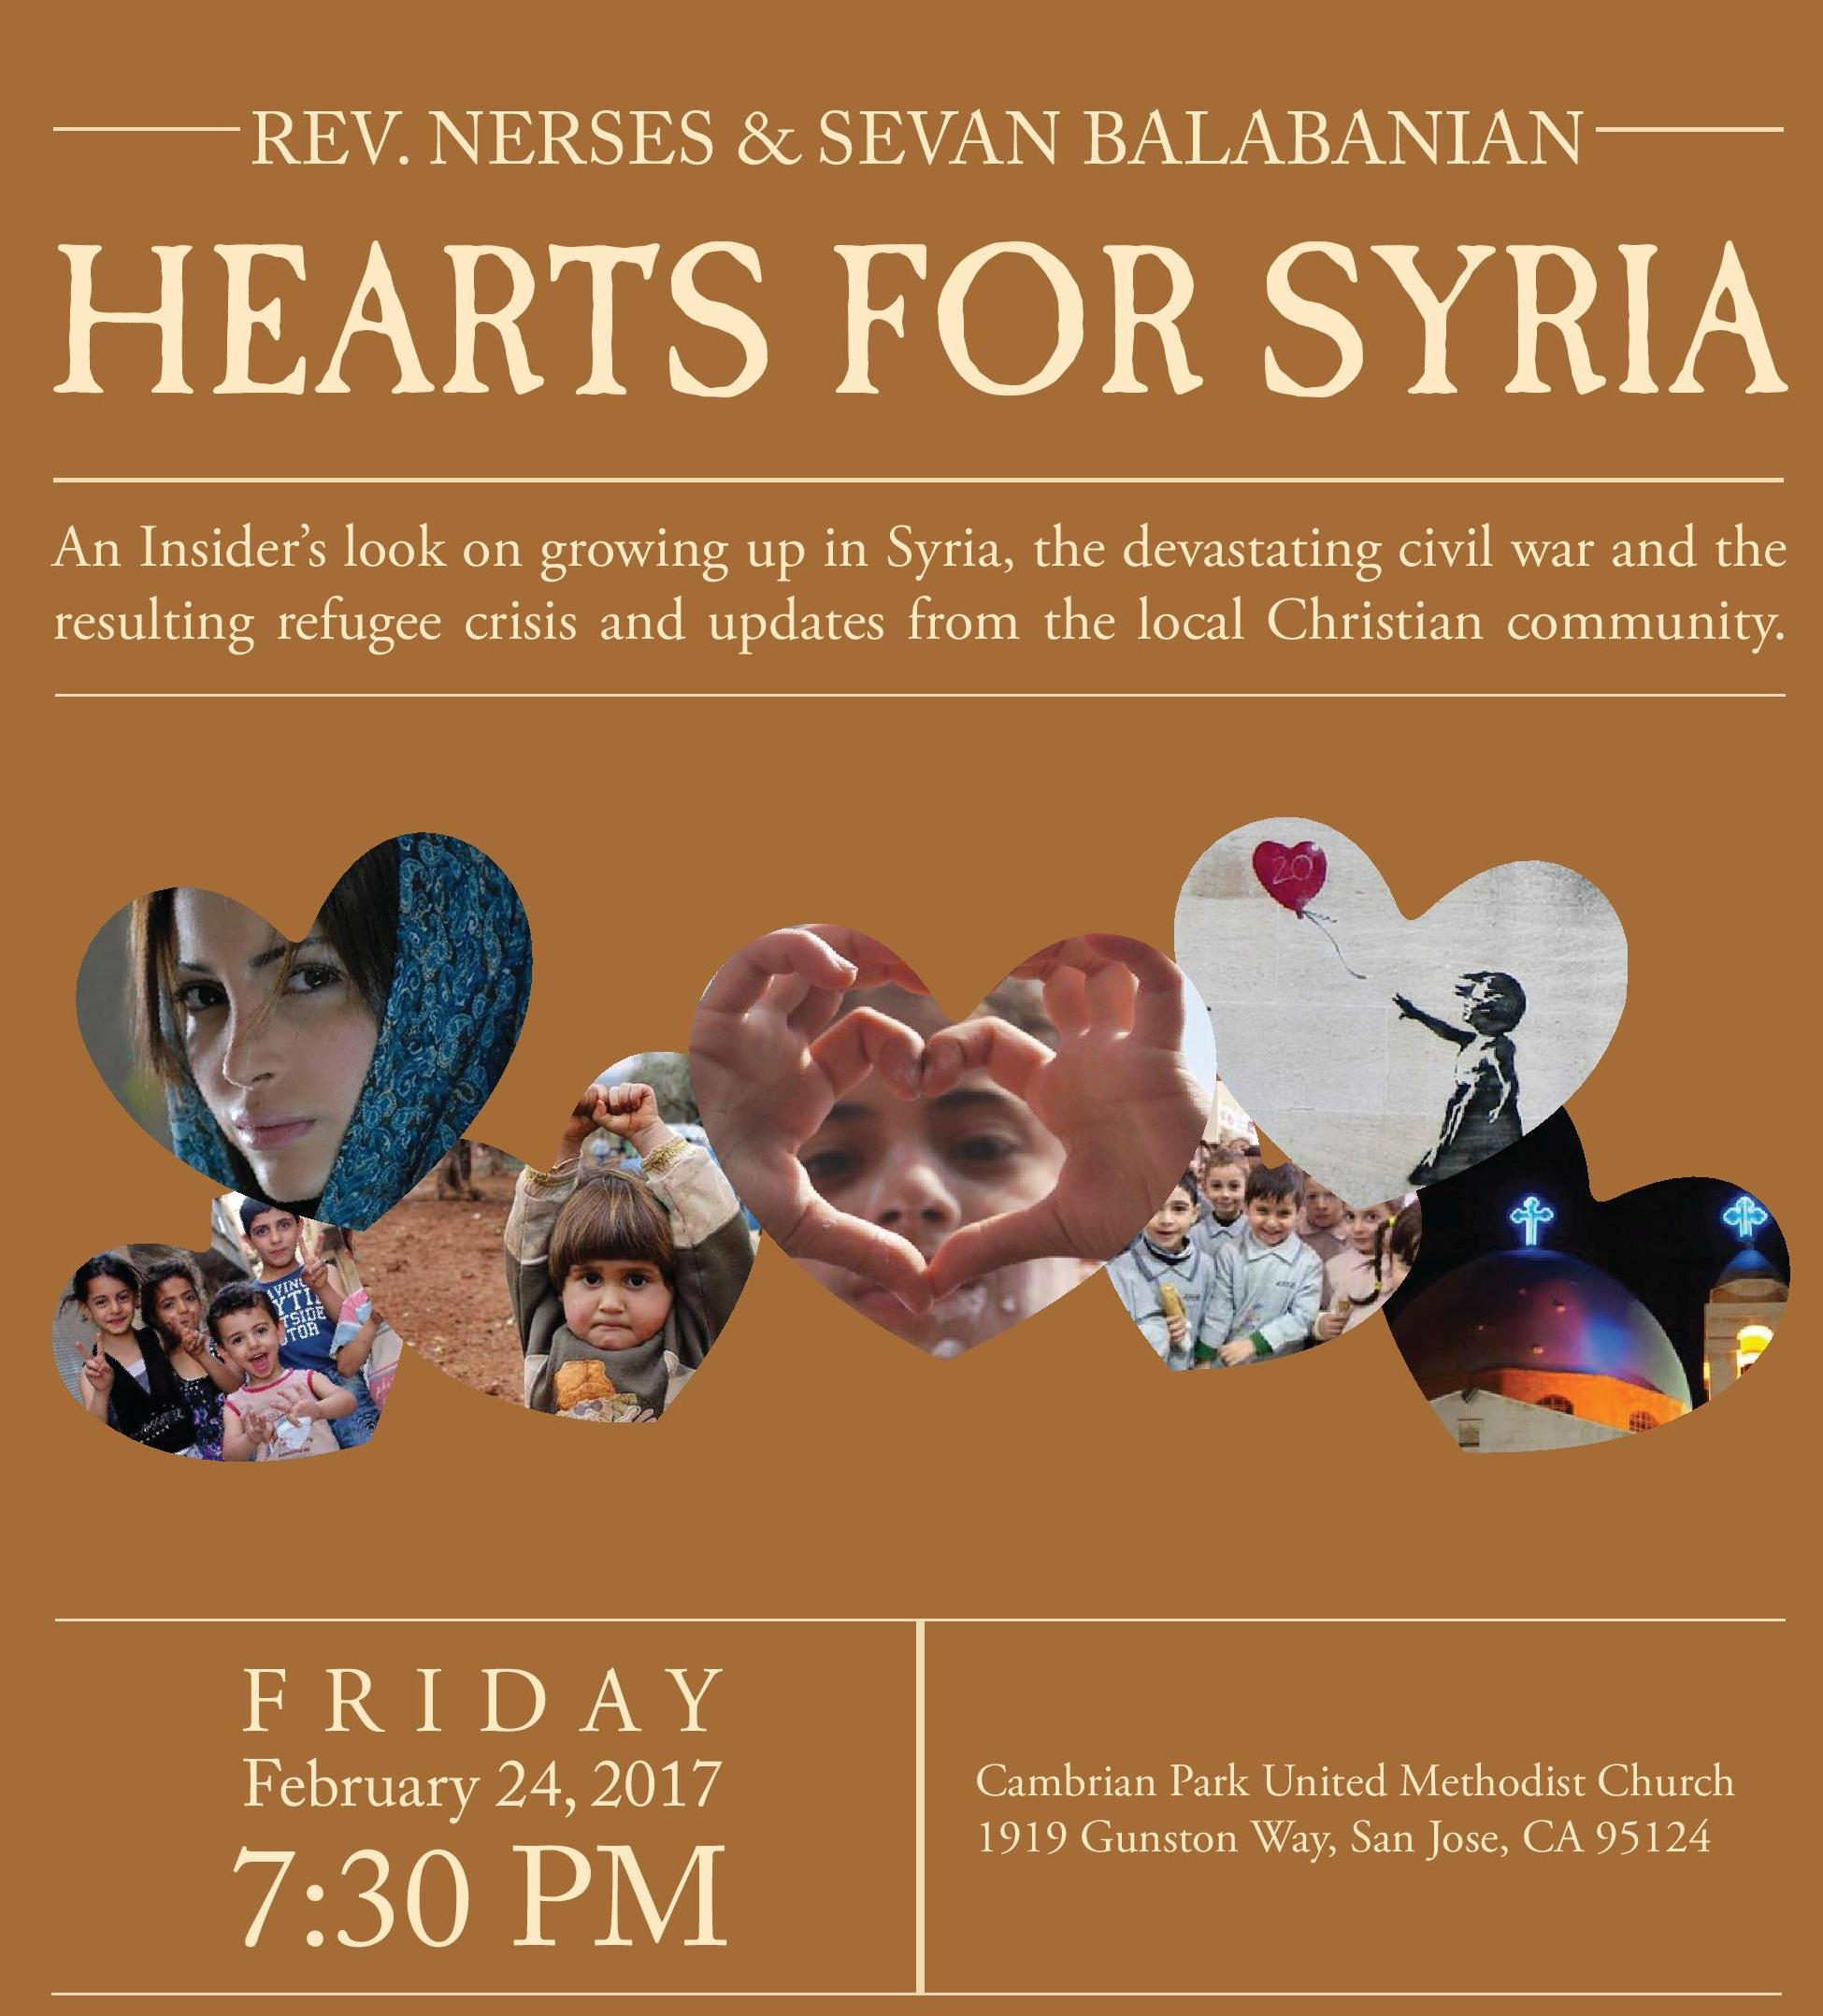 Hearts for Syria